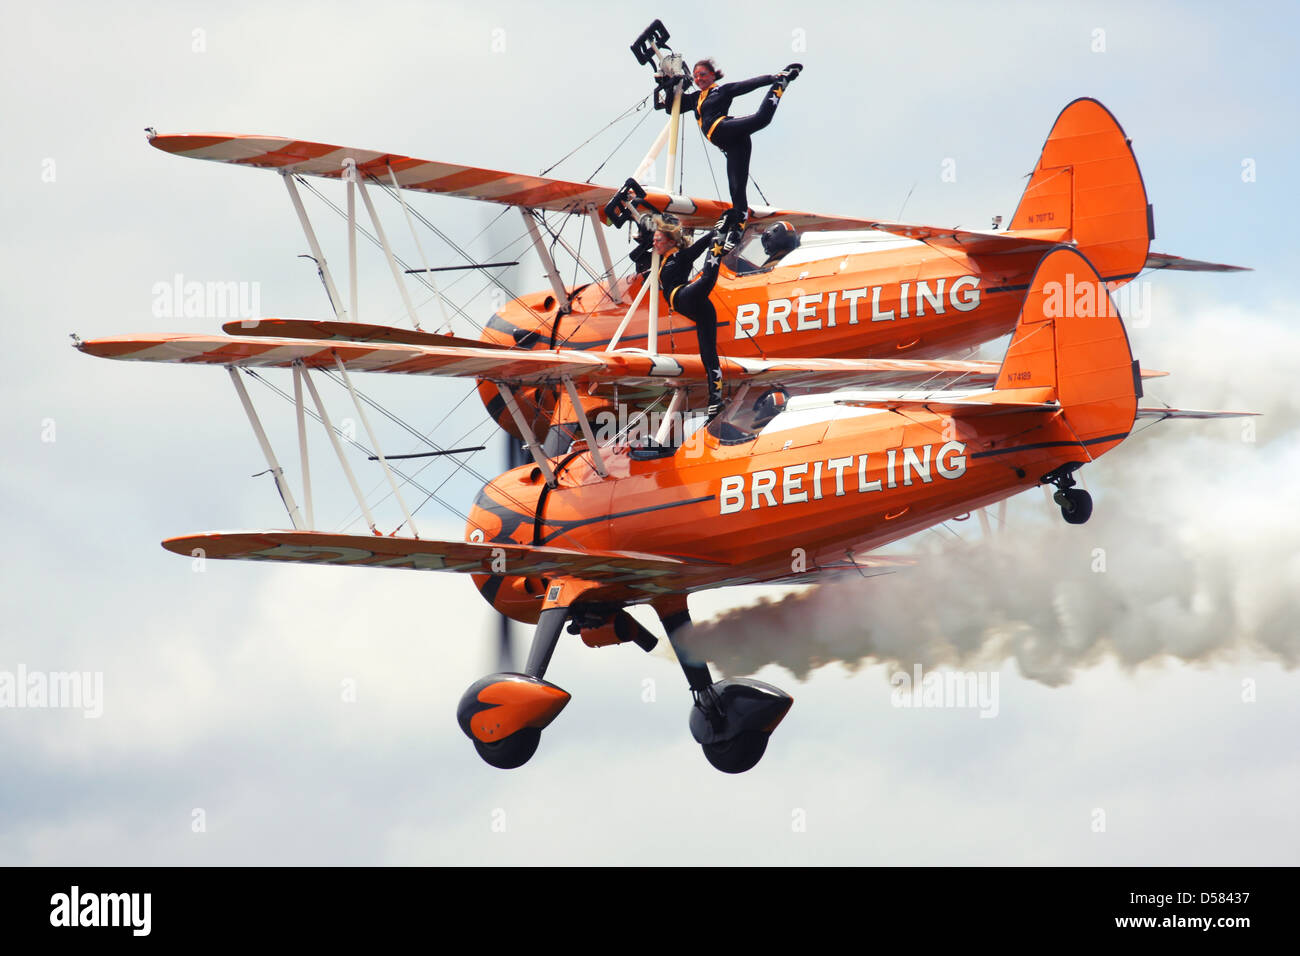 Breitling Wingwalkers British aerobatics and wingwalking team performing at Farnborough Airshow 2012, UK Stock Photo